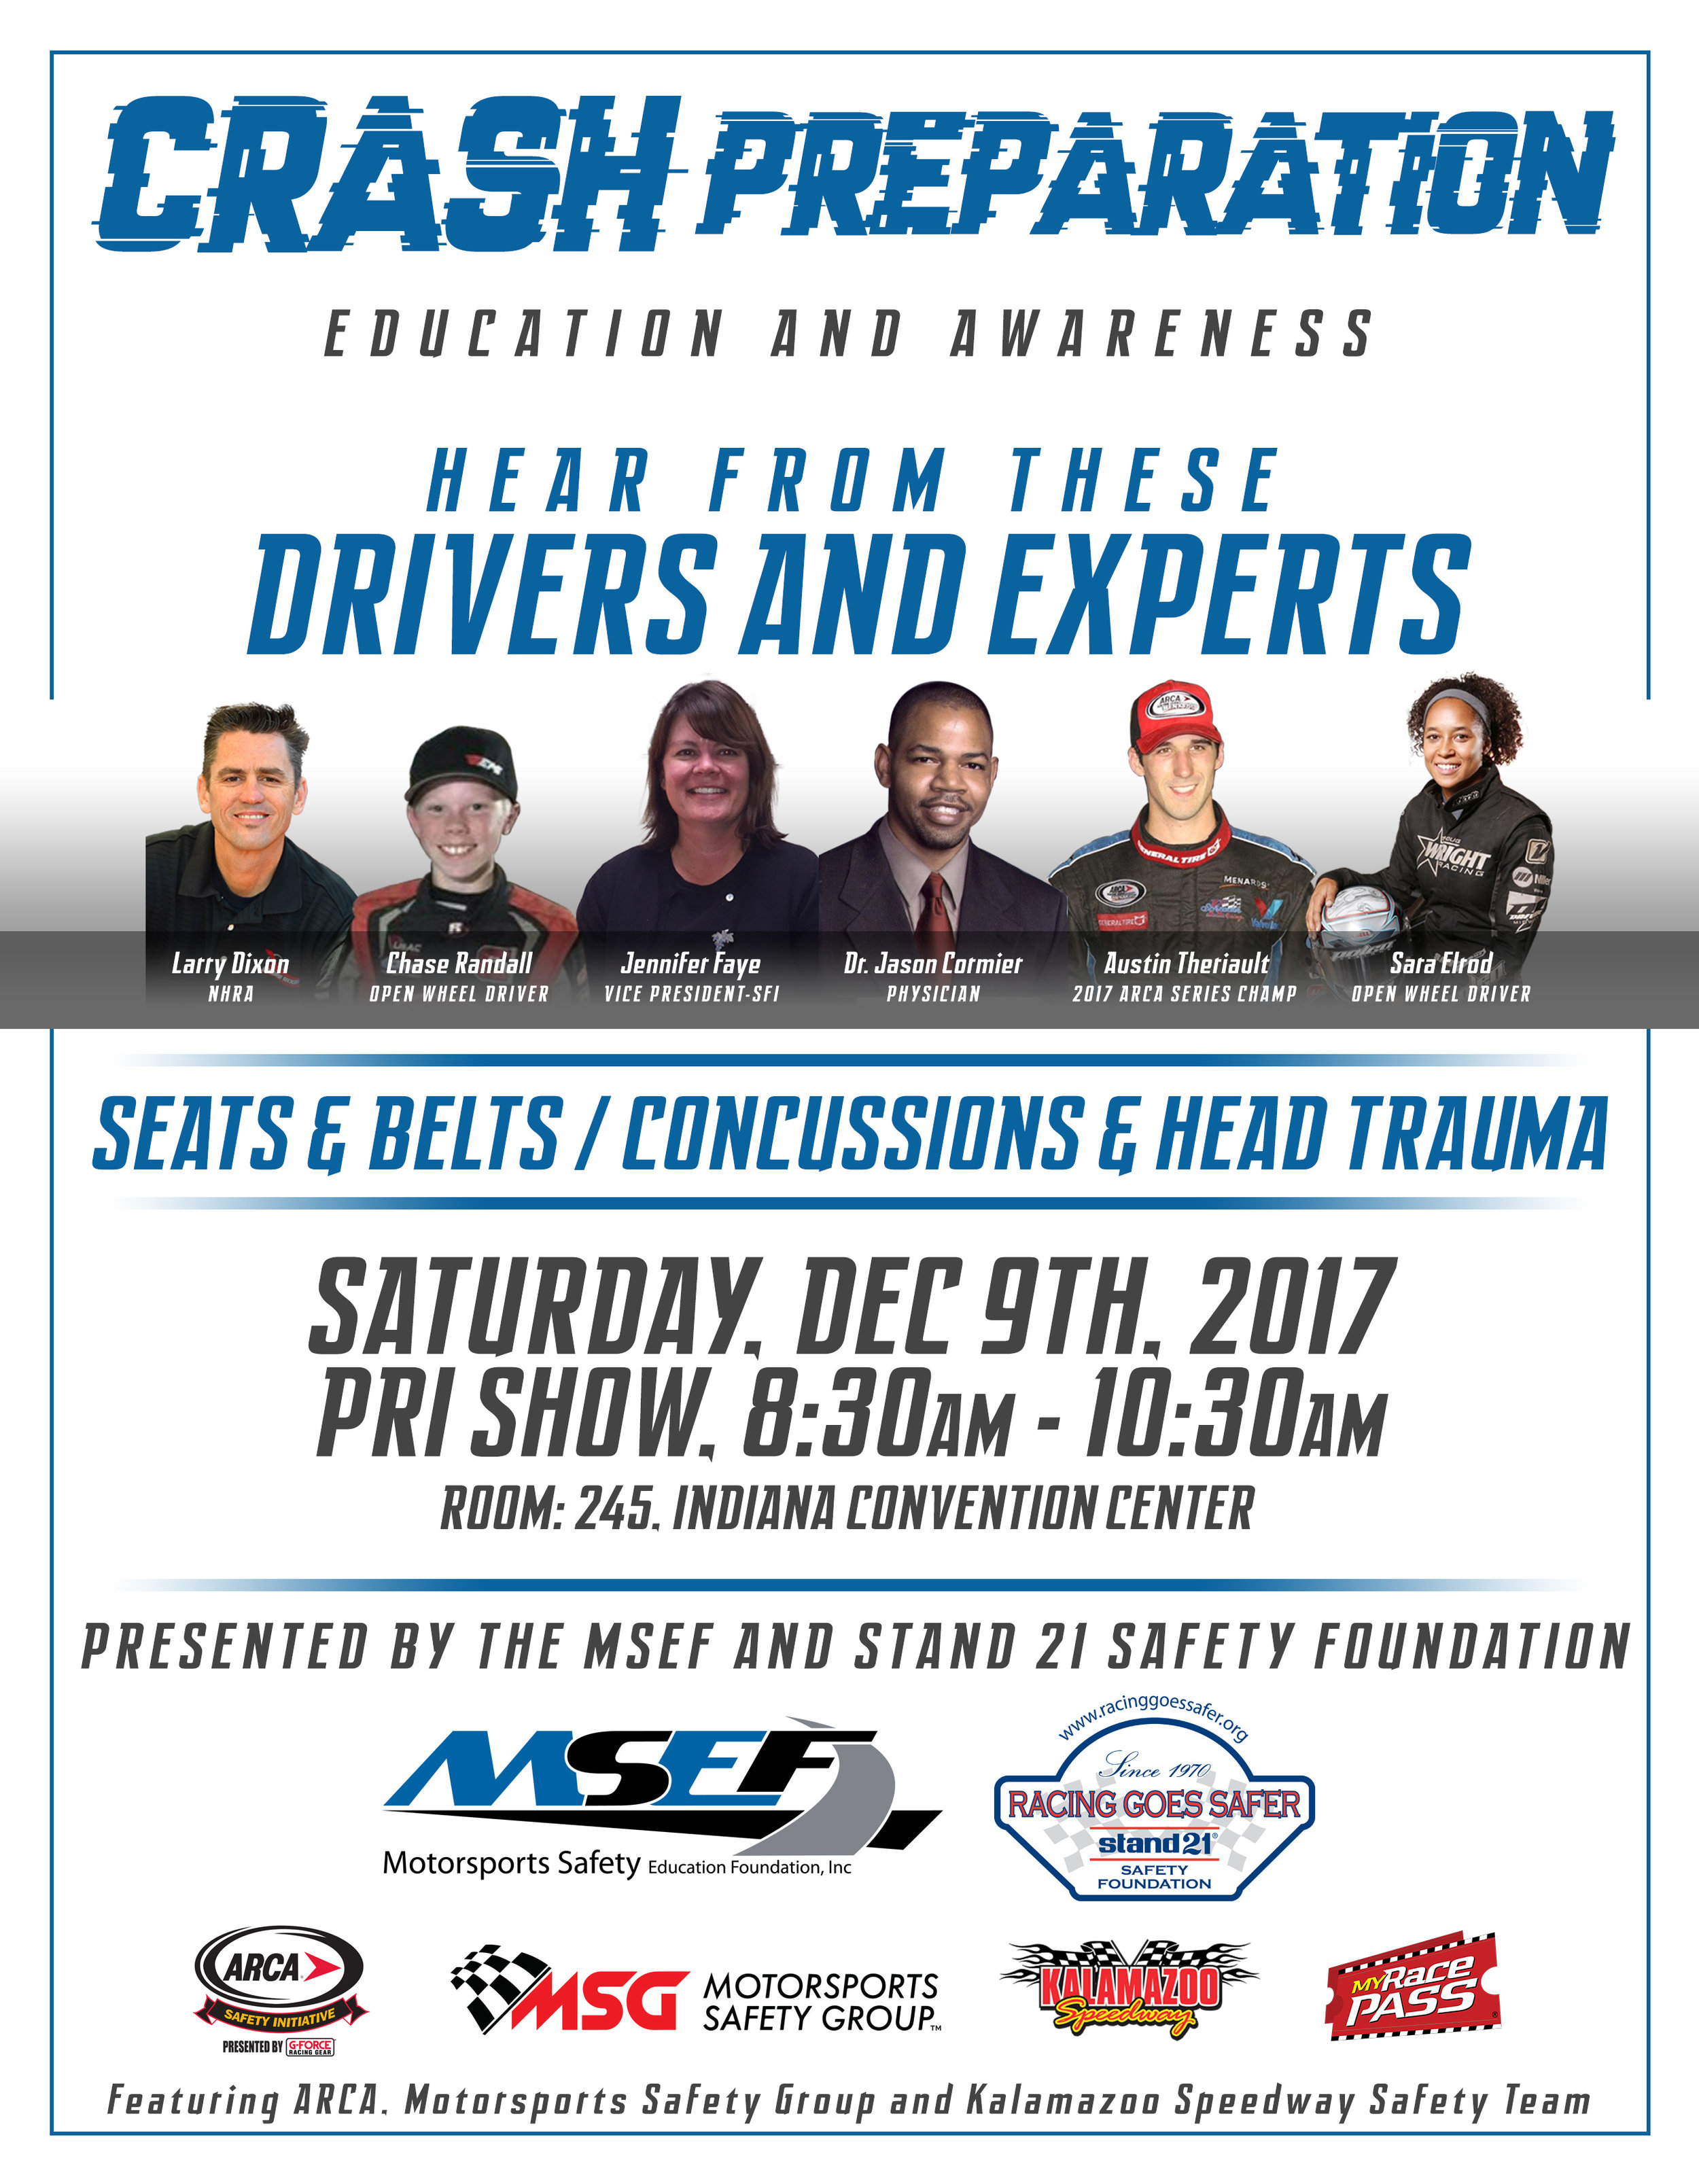 Motorsports Safety Group is looking forward to connect with you at the 30th anniversary PRI show December 7th -9th in Indianapolis, IN.  Dr Jason Cormier along with his partners and team are bringing awareness of brain and spine injury,  health and wellness and the importance of athleticisim in the racing industry.